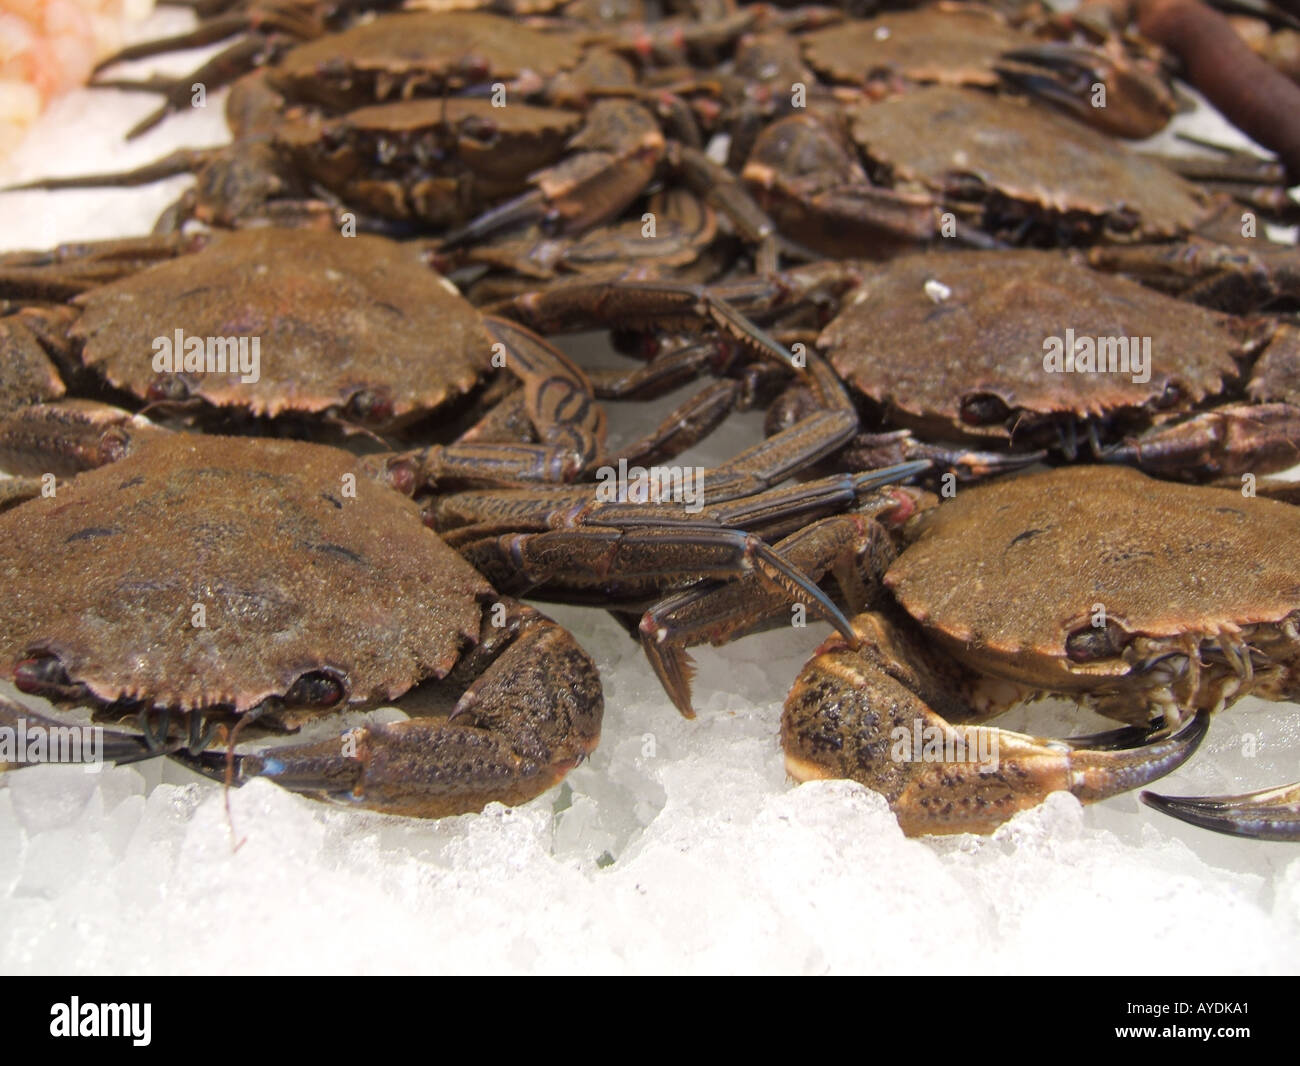 crabs for sale at fish market Stock Photo: 5574560 - Alamy